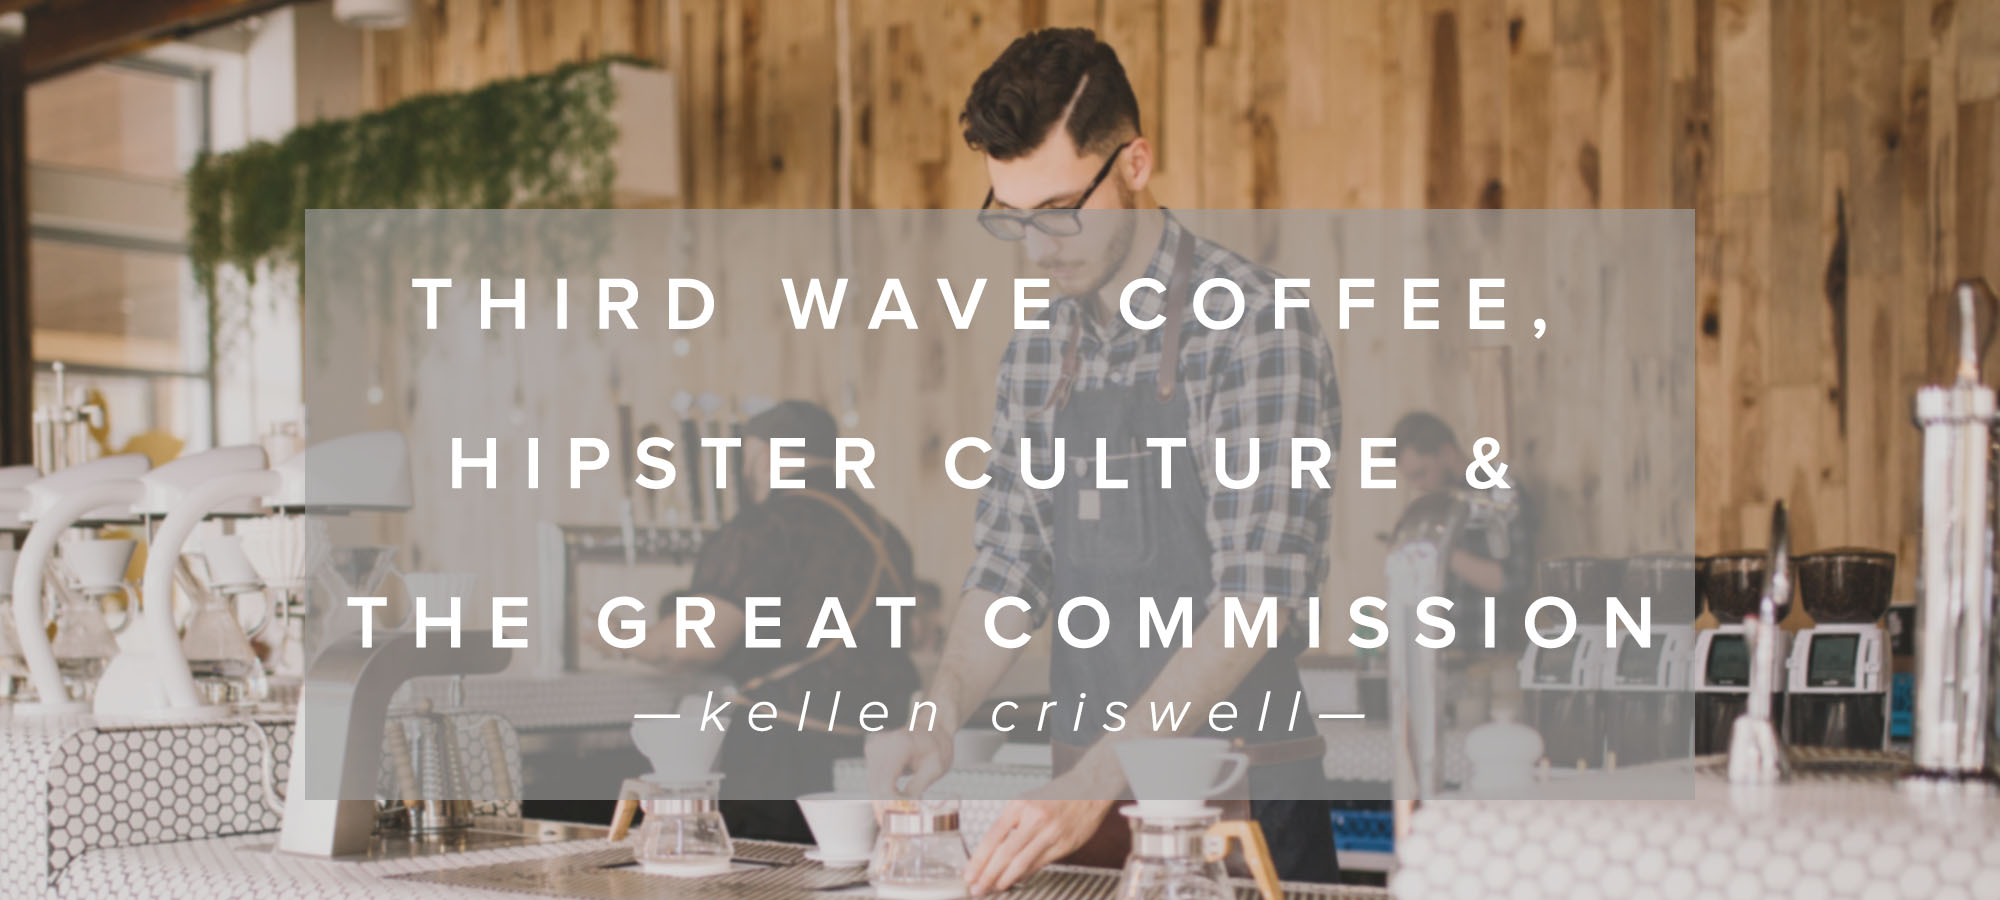 Third Wave Coffee, Hipster Culture & the Great Commission